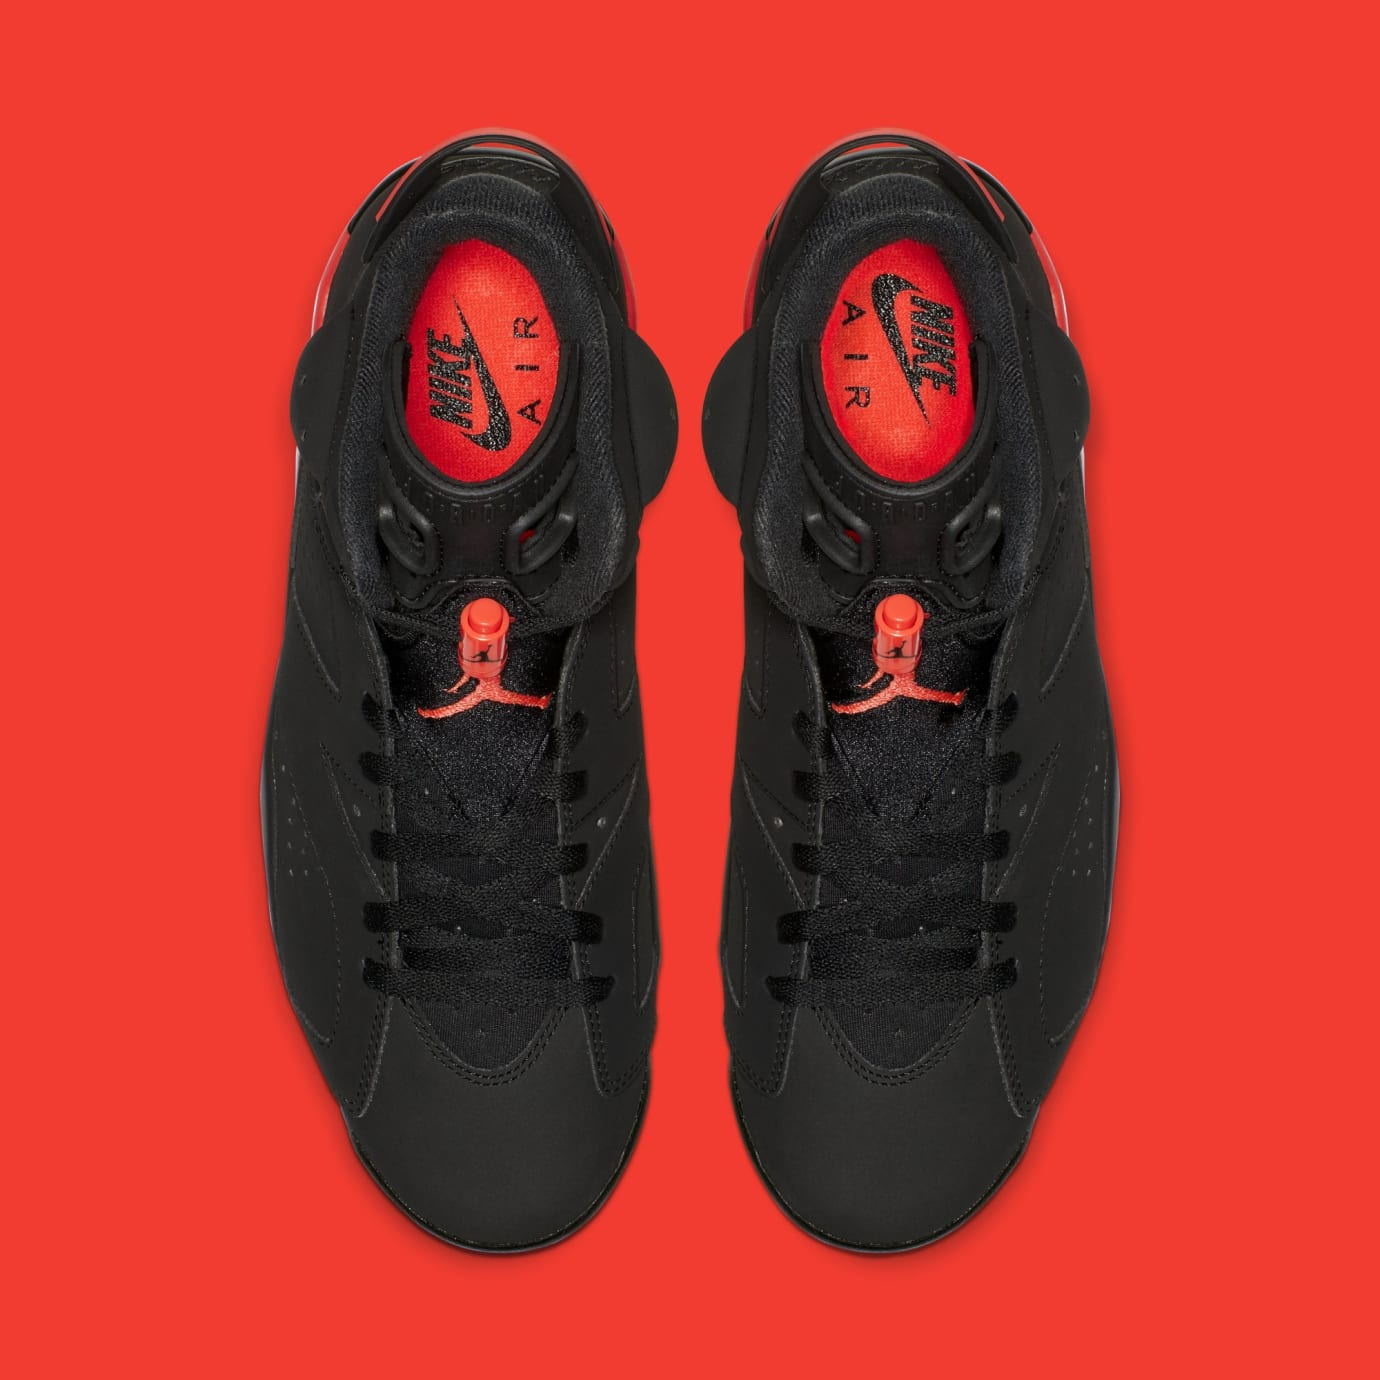 213658e258fce1 Image via Nike Air Jordan 6  Black Infrared  384664-060 (Top)